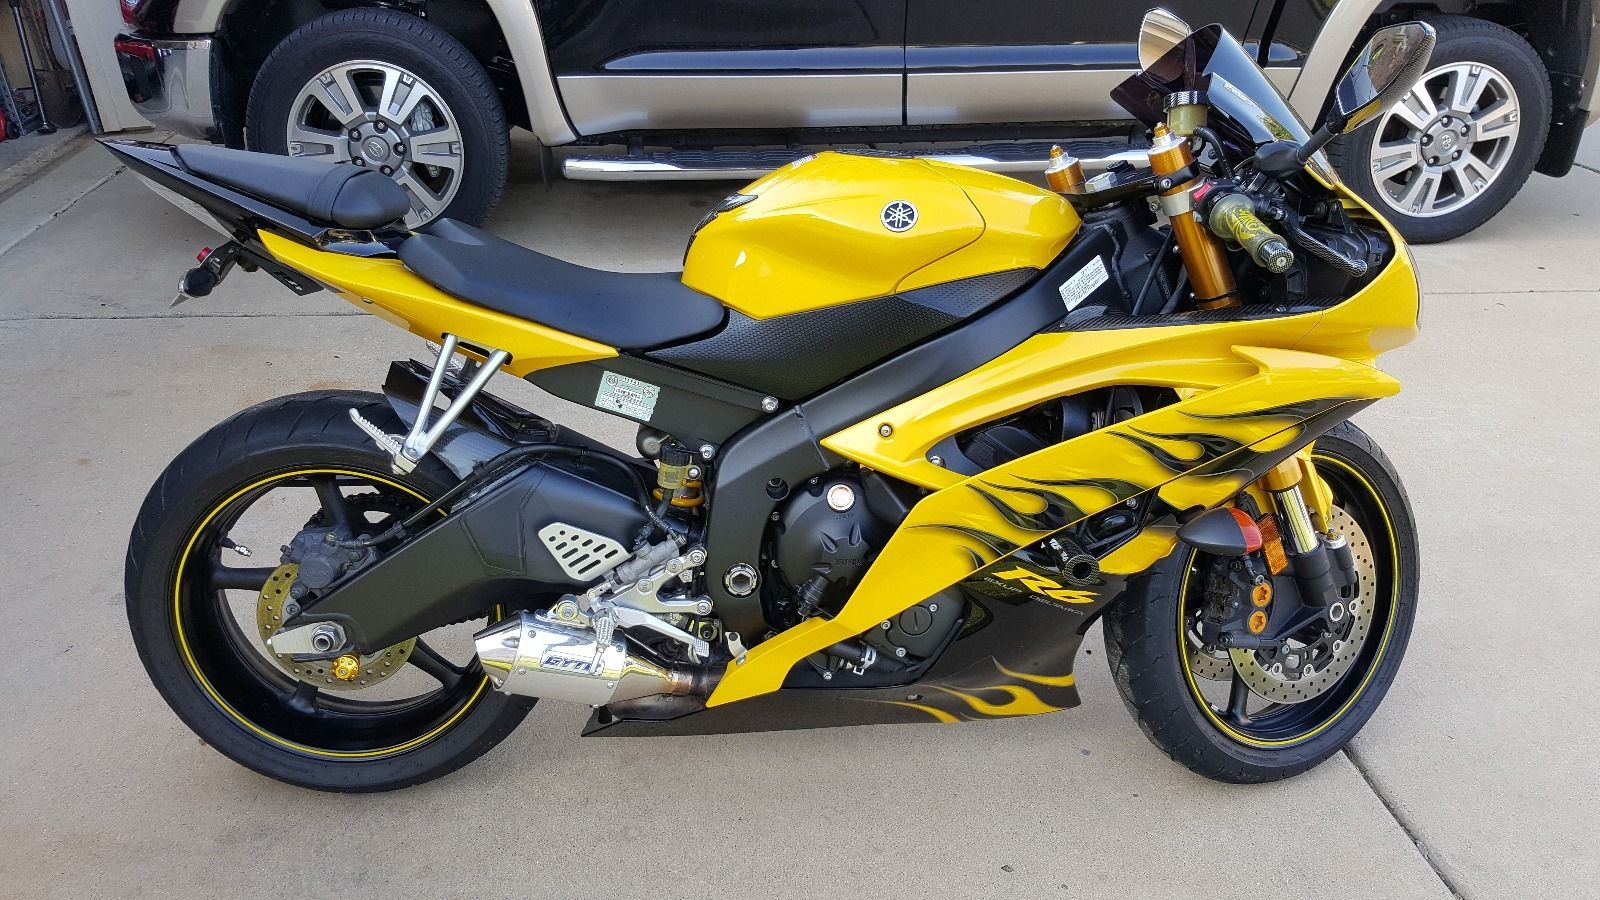 2008 yamaha yzf r6 special edition yellow frame for sale. Black Bedroom Furniture Sets. Home Design Ideas